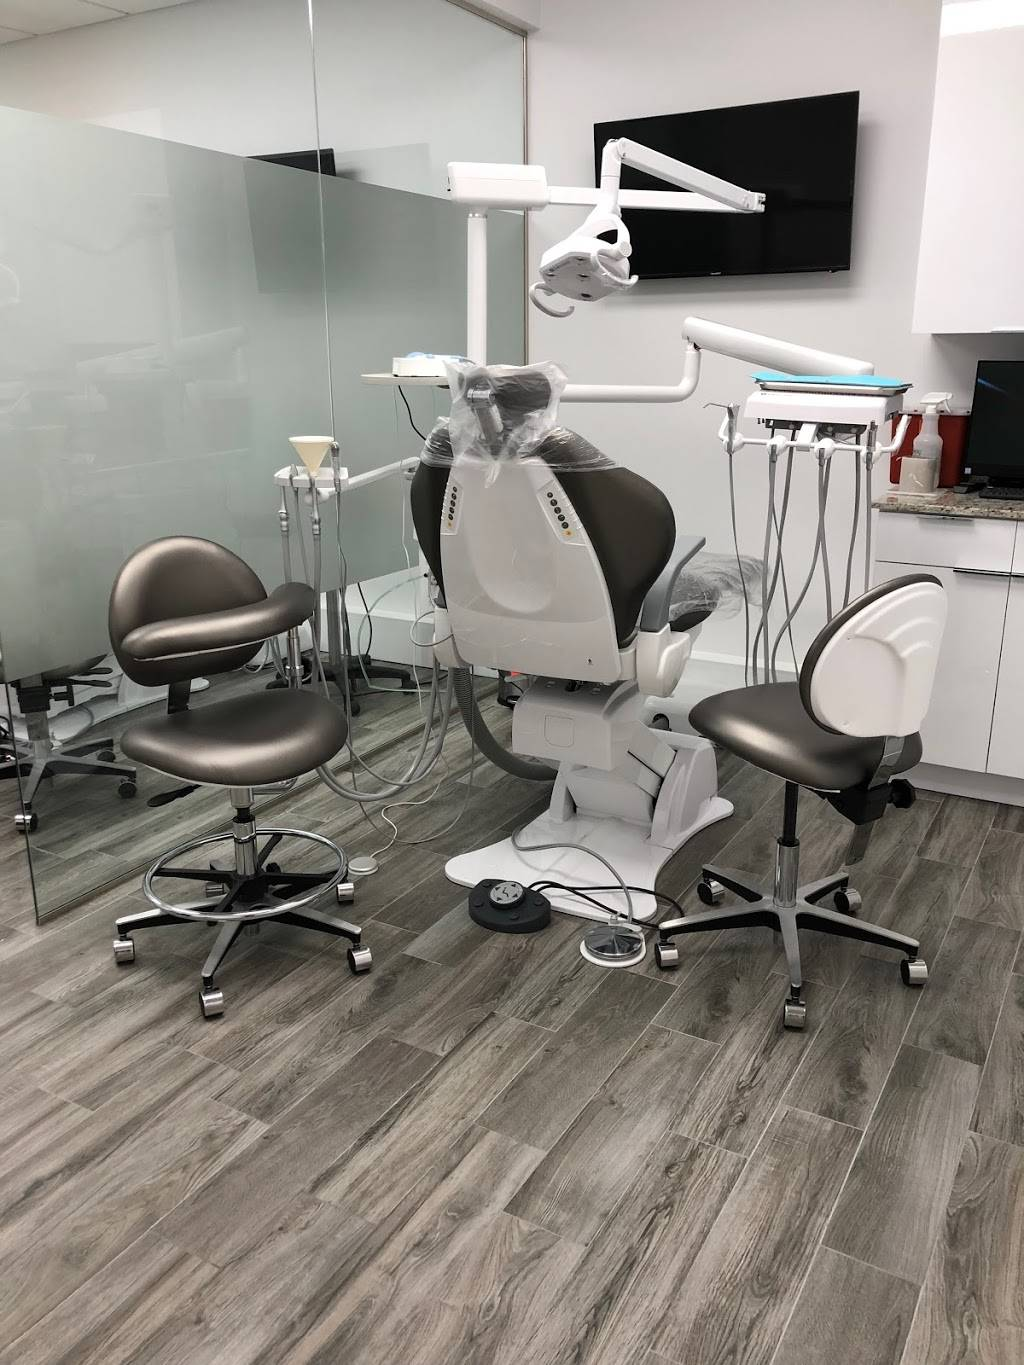 Unidental Center: Eunice Perez DDS - dentist  | Photo 8 of 10 | Address: 12622 SW 8th St, Miami, FL 33184, USA | Phone: (305) 456-8877